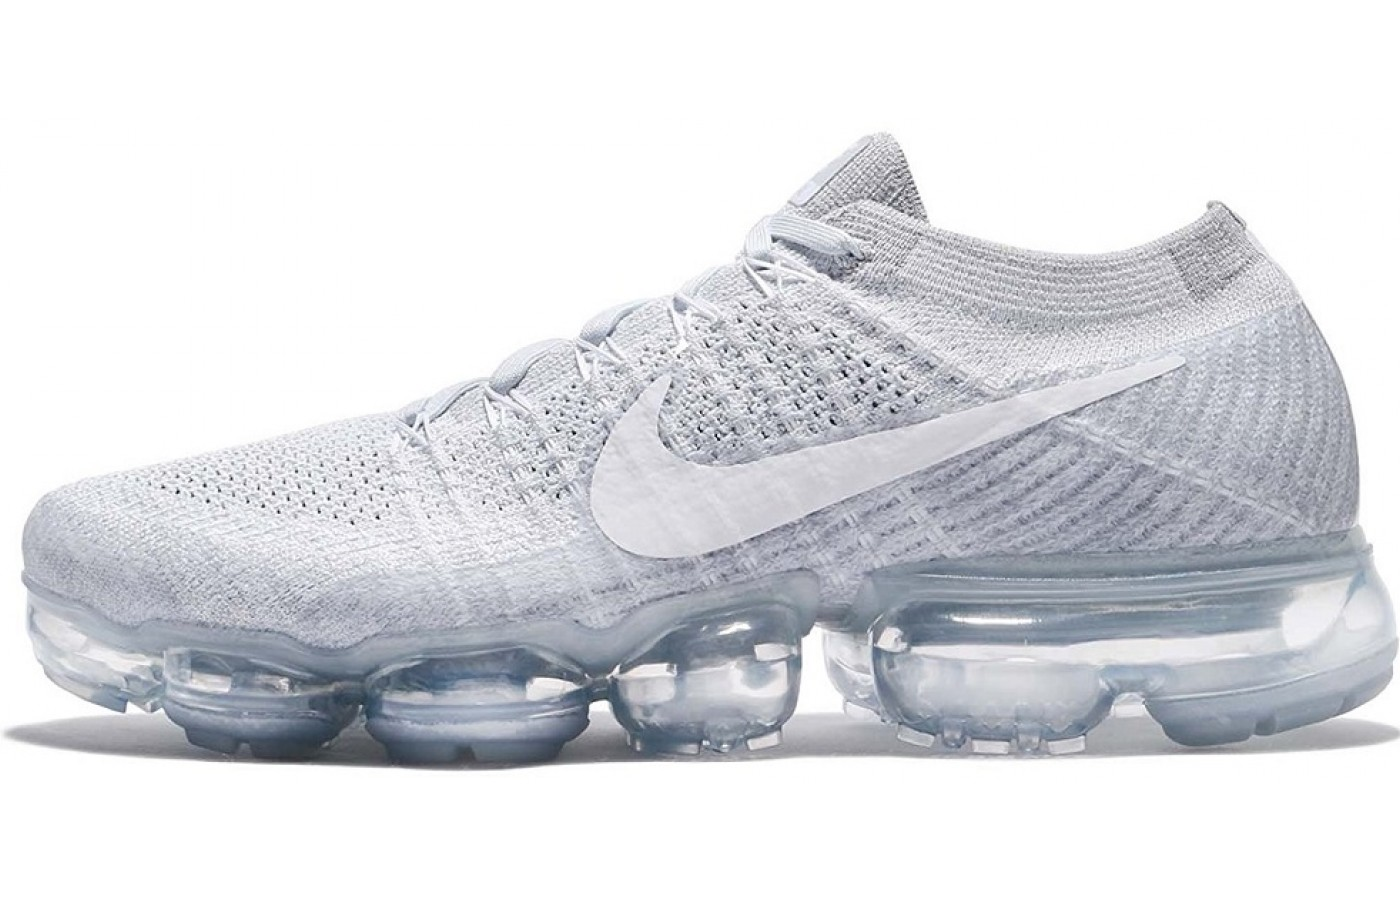 competitive price 3df8d 9ab78 Nike Air Vapormax Reviewed & Tested in 2019 | WalkJogRun